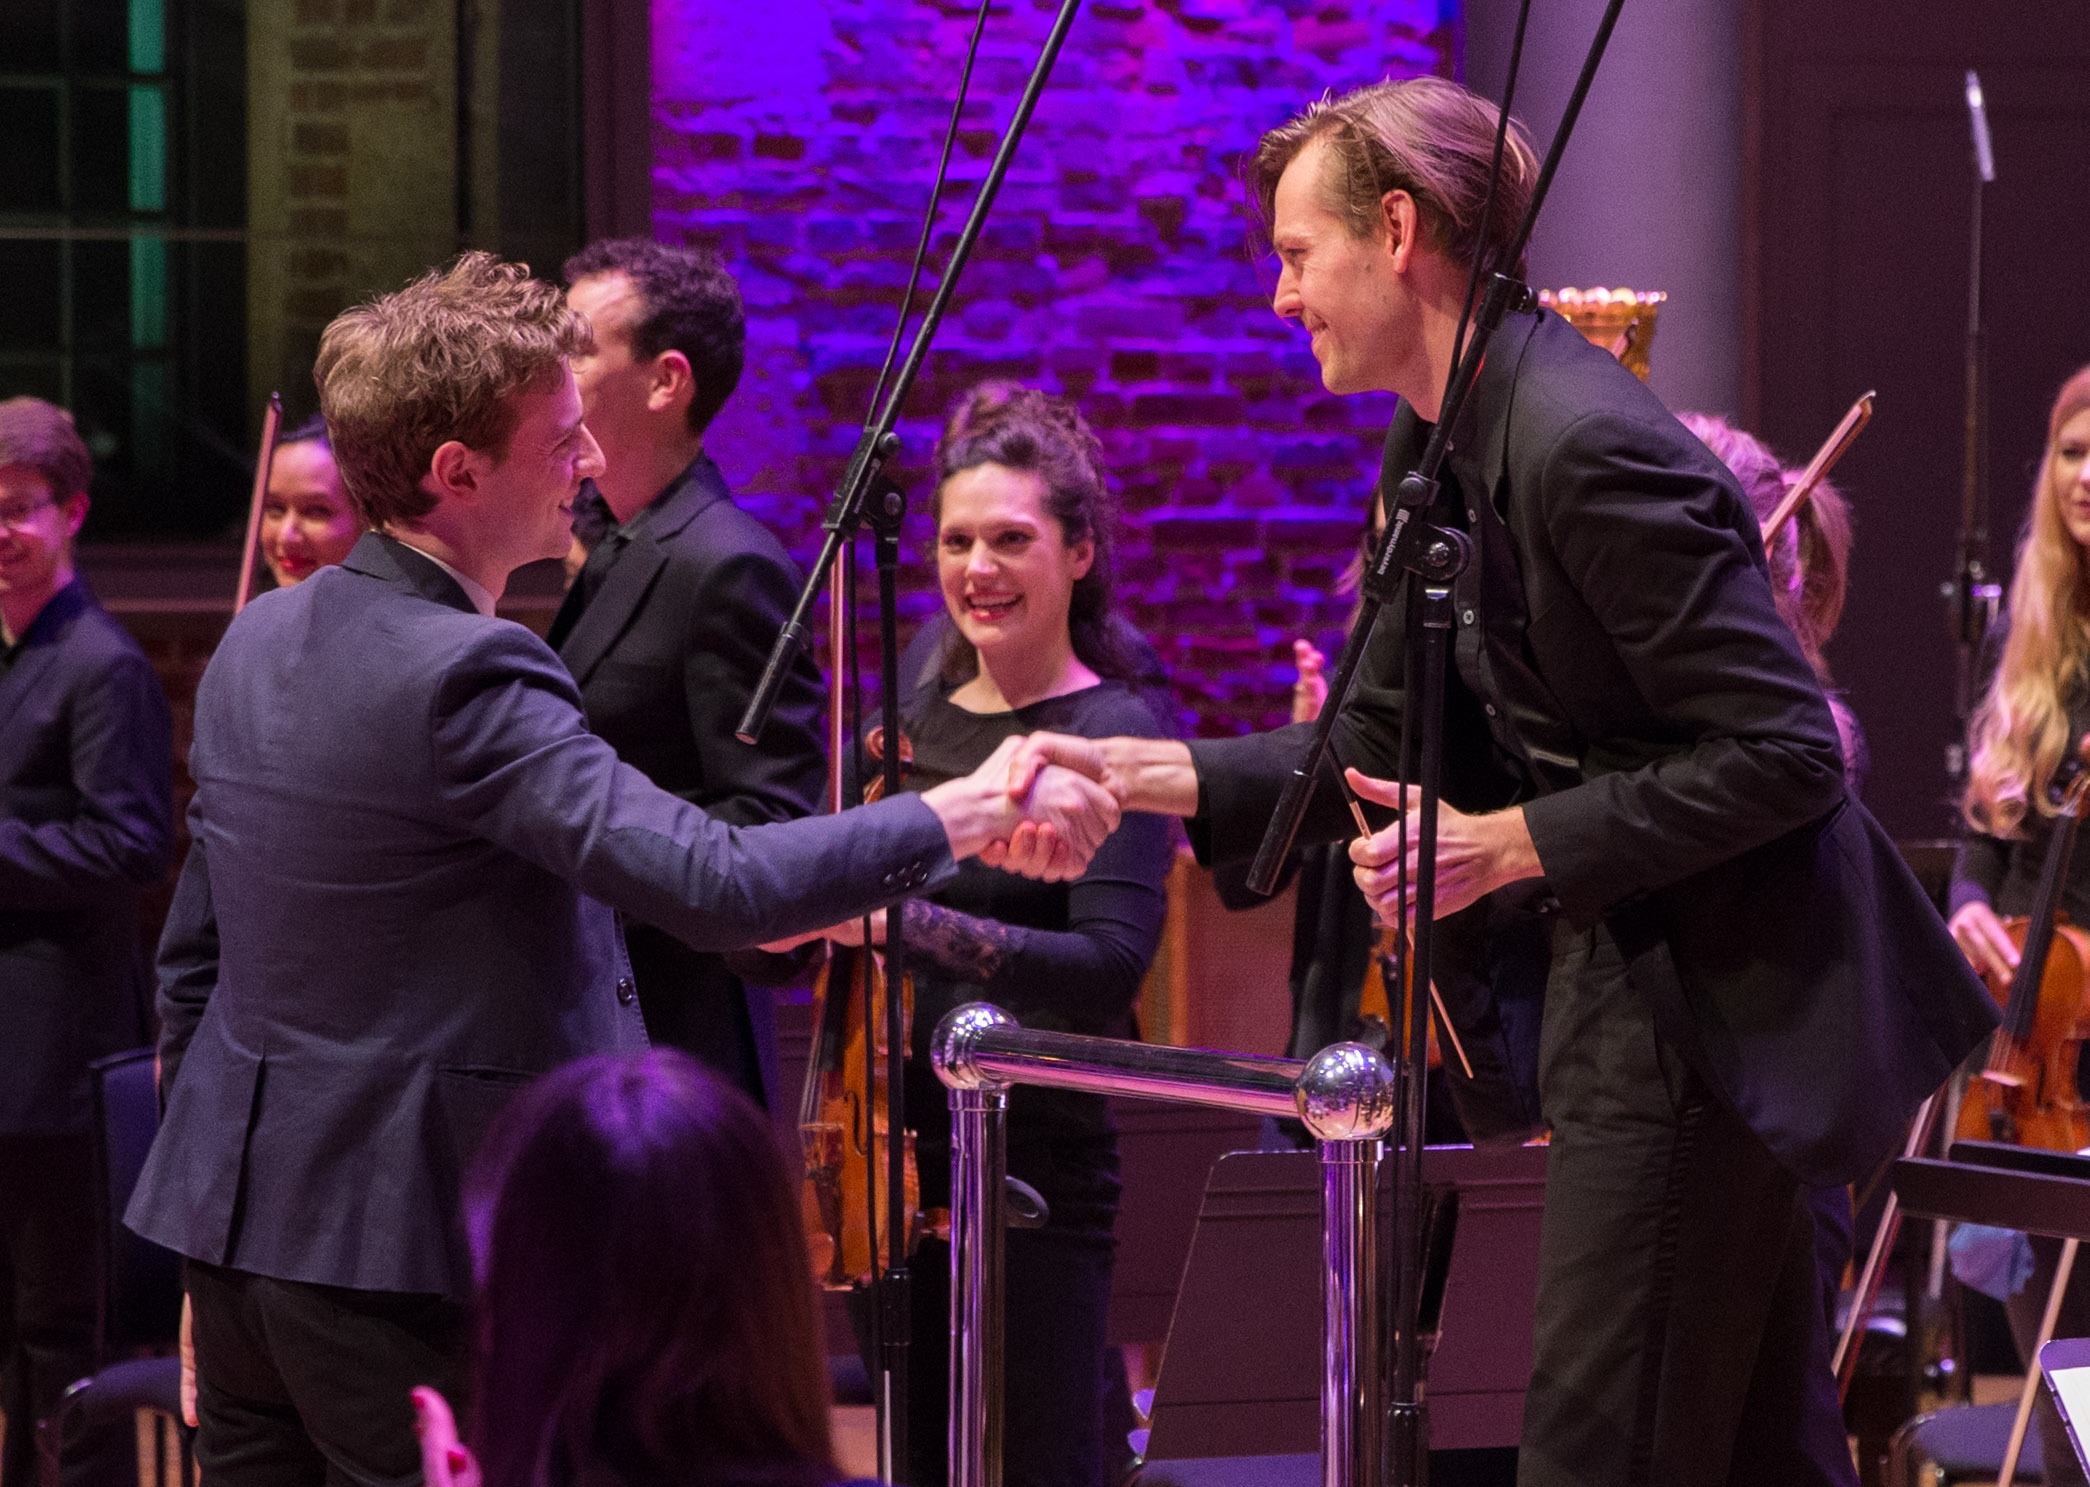 London Contemporary Orchestra takes to the stage in front of a star-studded audience to launch The Cadbury Dairy Milk Sound of Flavourites album, the first ever music album designed by the brand to enhance the taste experience of the nine flavours in the Cadbury Dairy Milk range